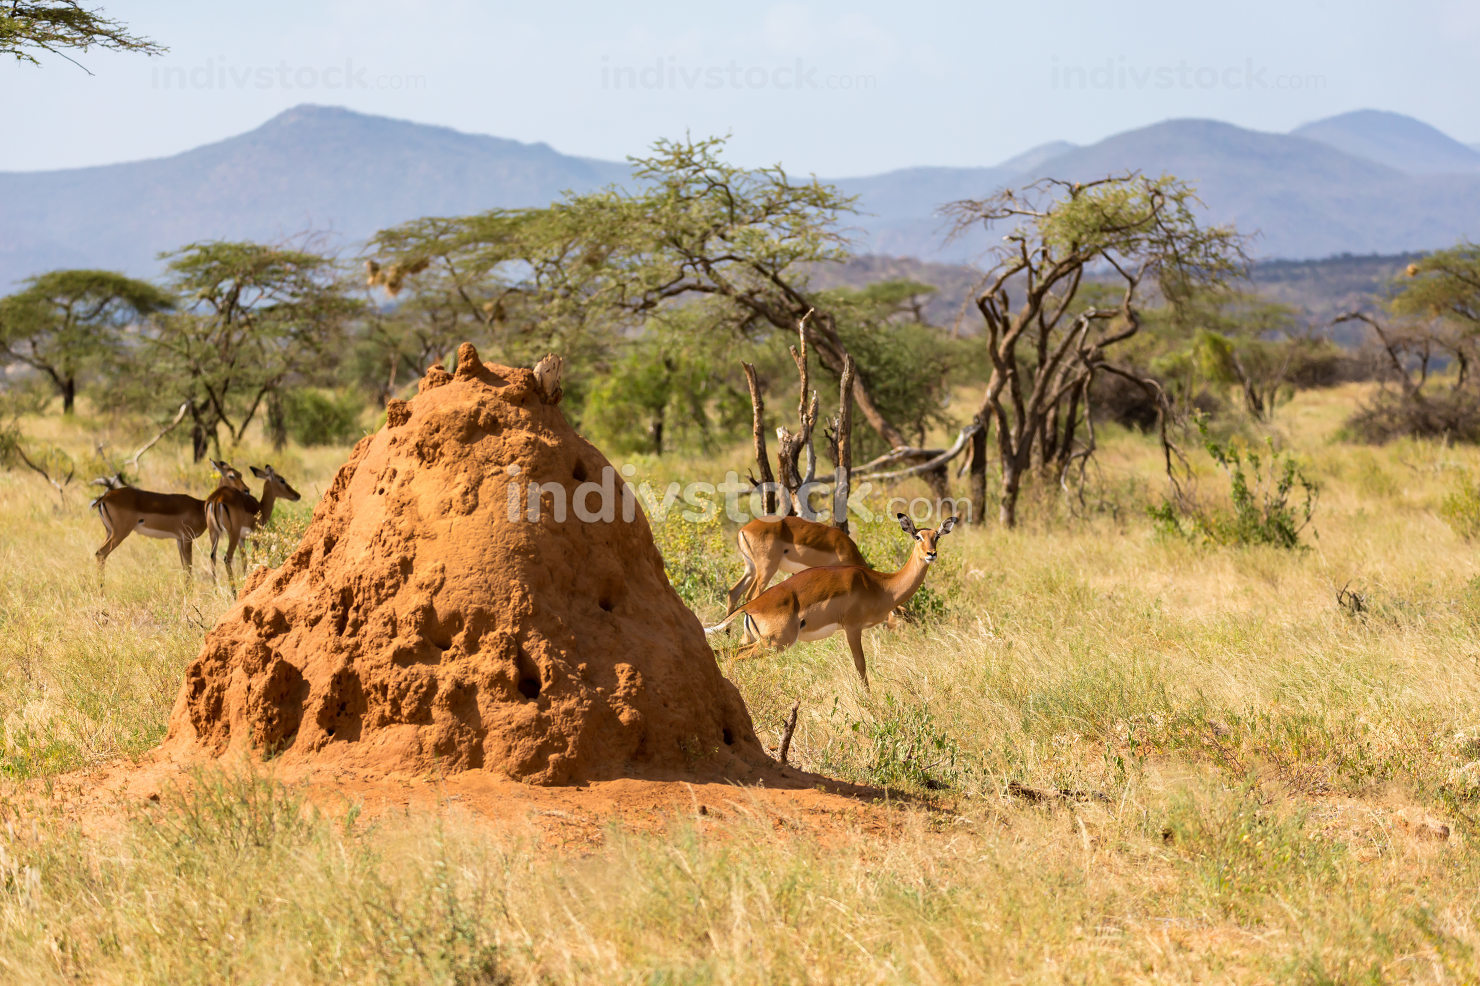 The large anthill behind which Gerenuk's hide